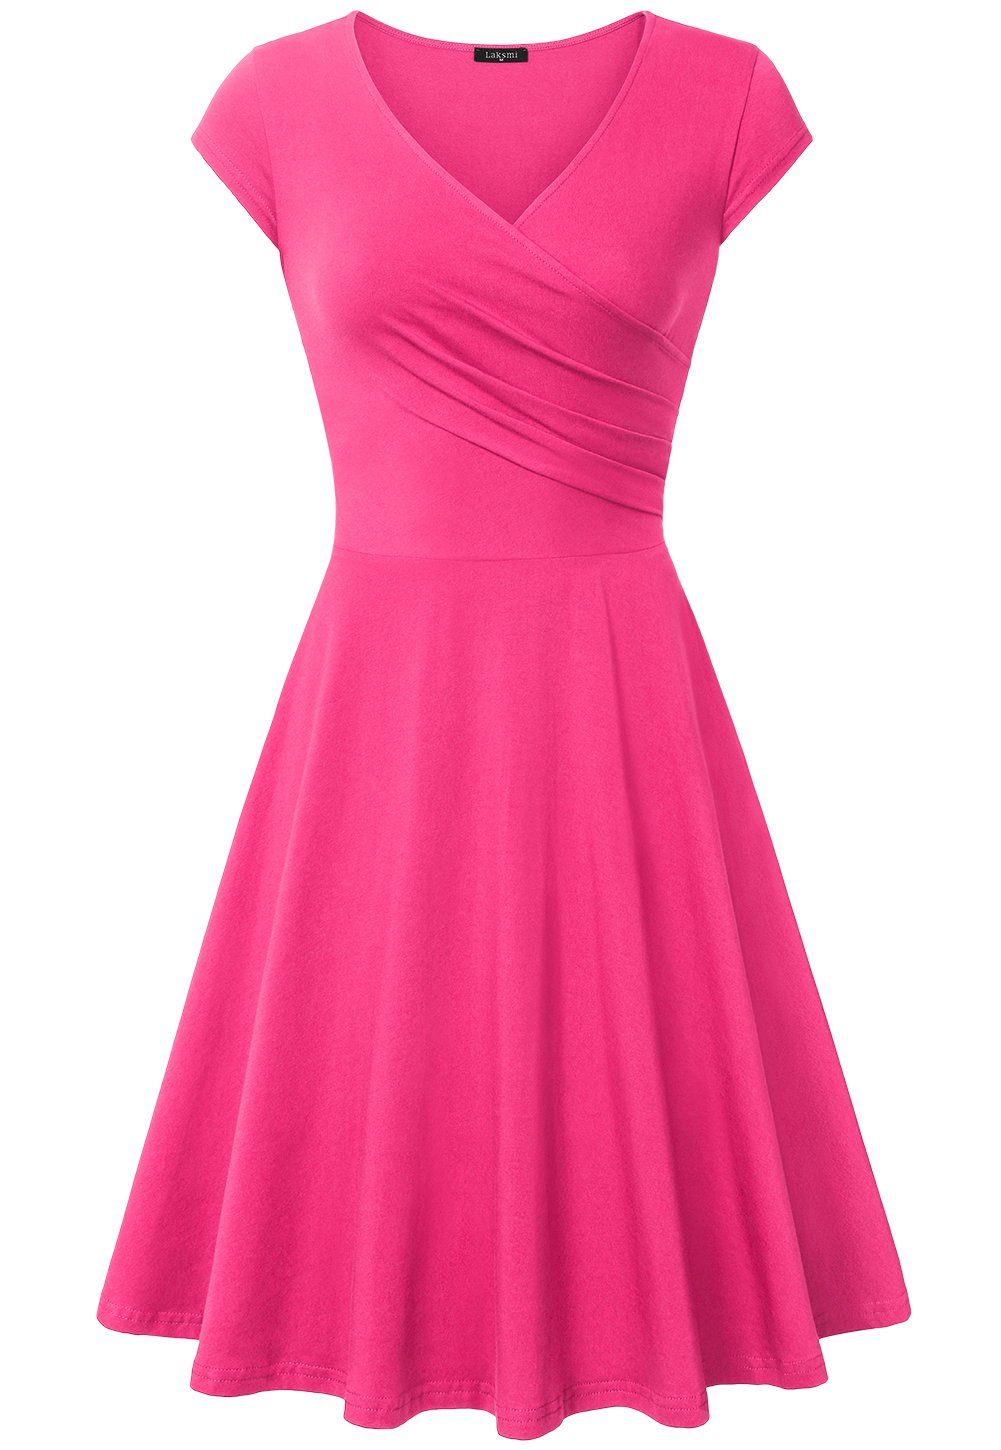 Laksmi Bridesmaid Dresses, Women Stretch Curve Summer Party Banque,X-Large Light Rose